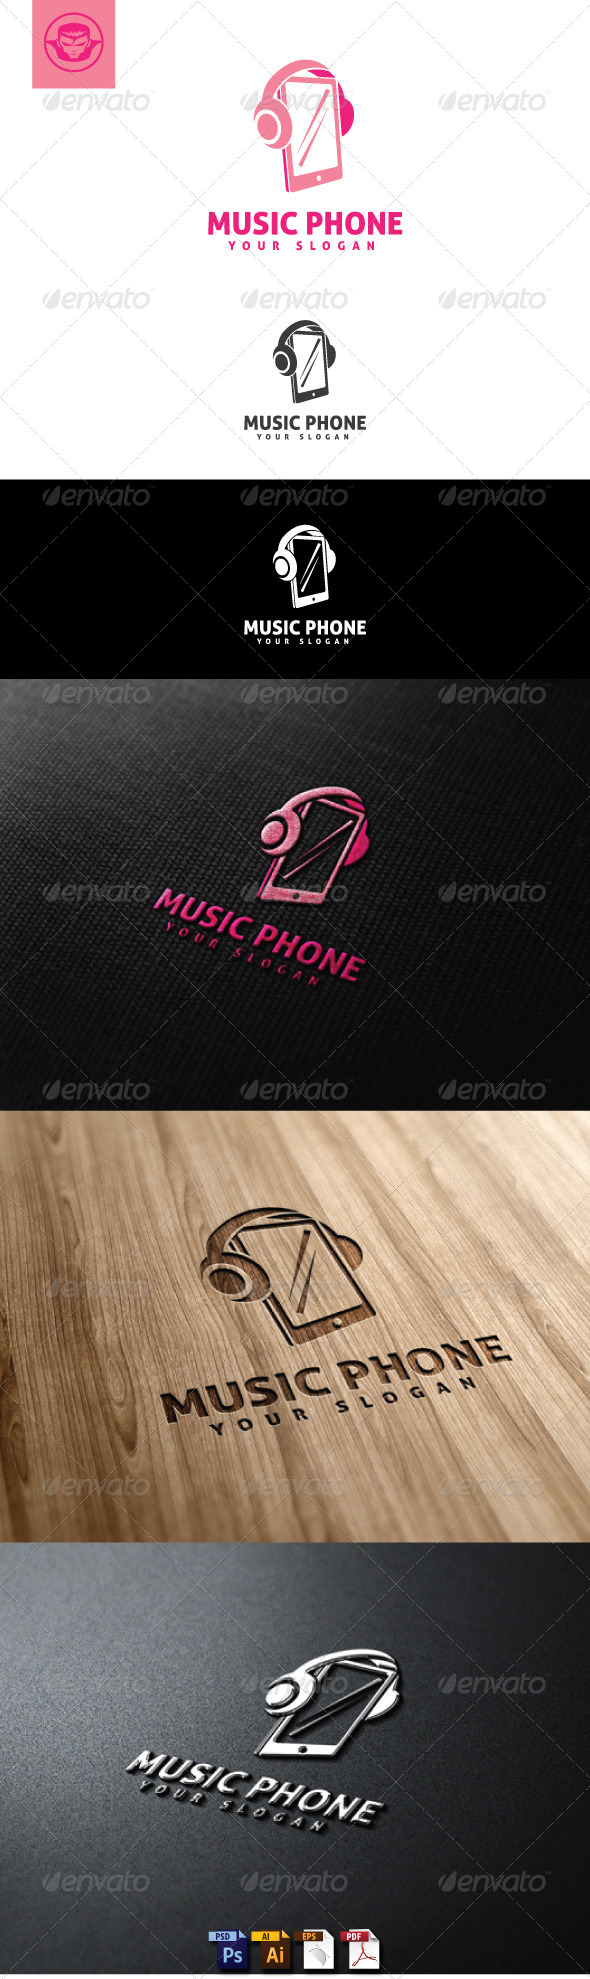 Music Phone Logo Template - Objects Logo Templates